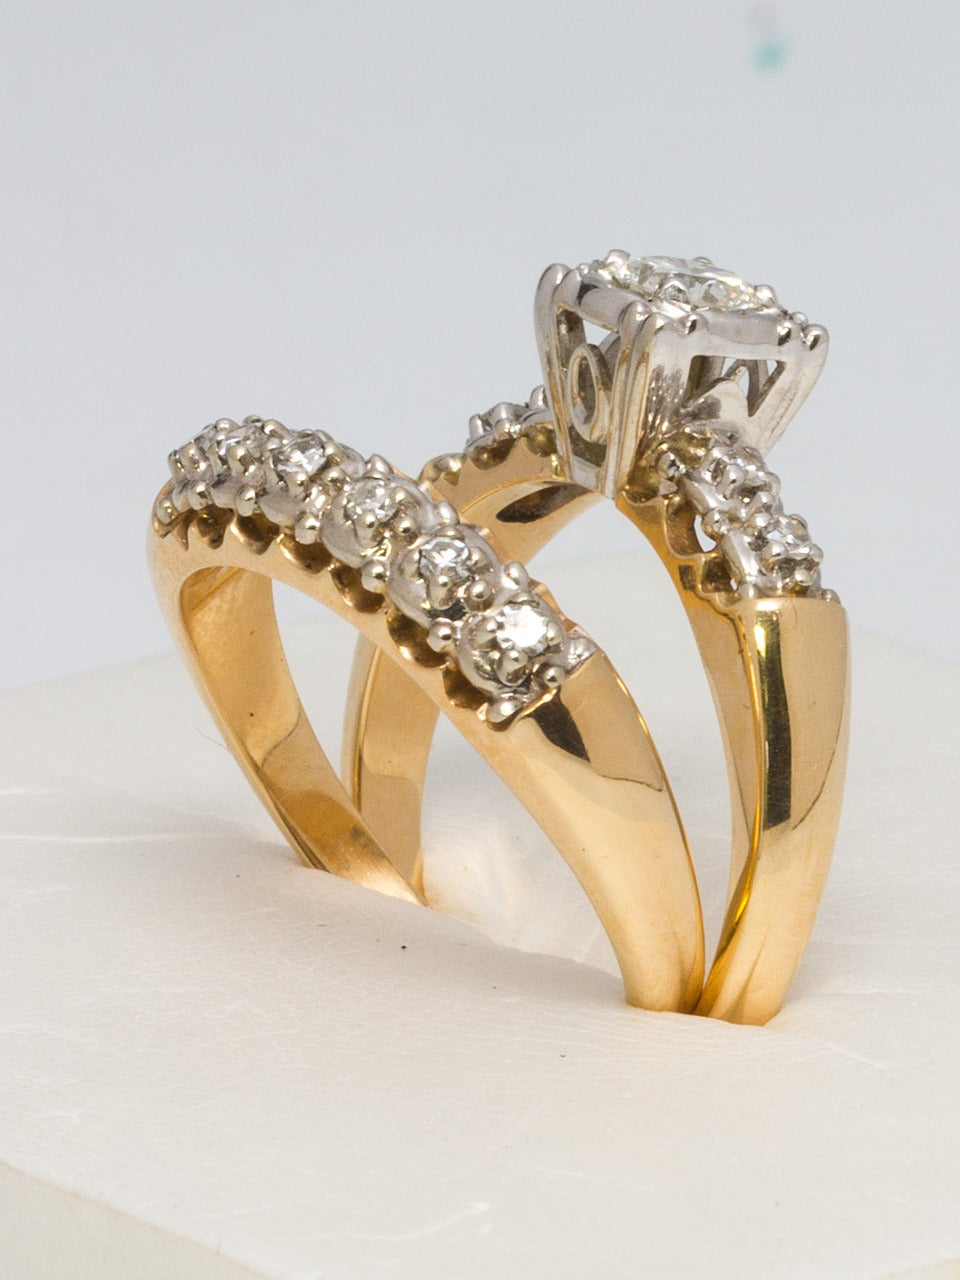 1950s Yellow Gold and Diamond Wedding Ring Set For Sale at 1stdibs